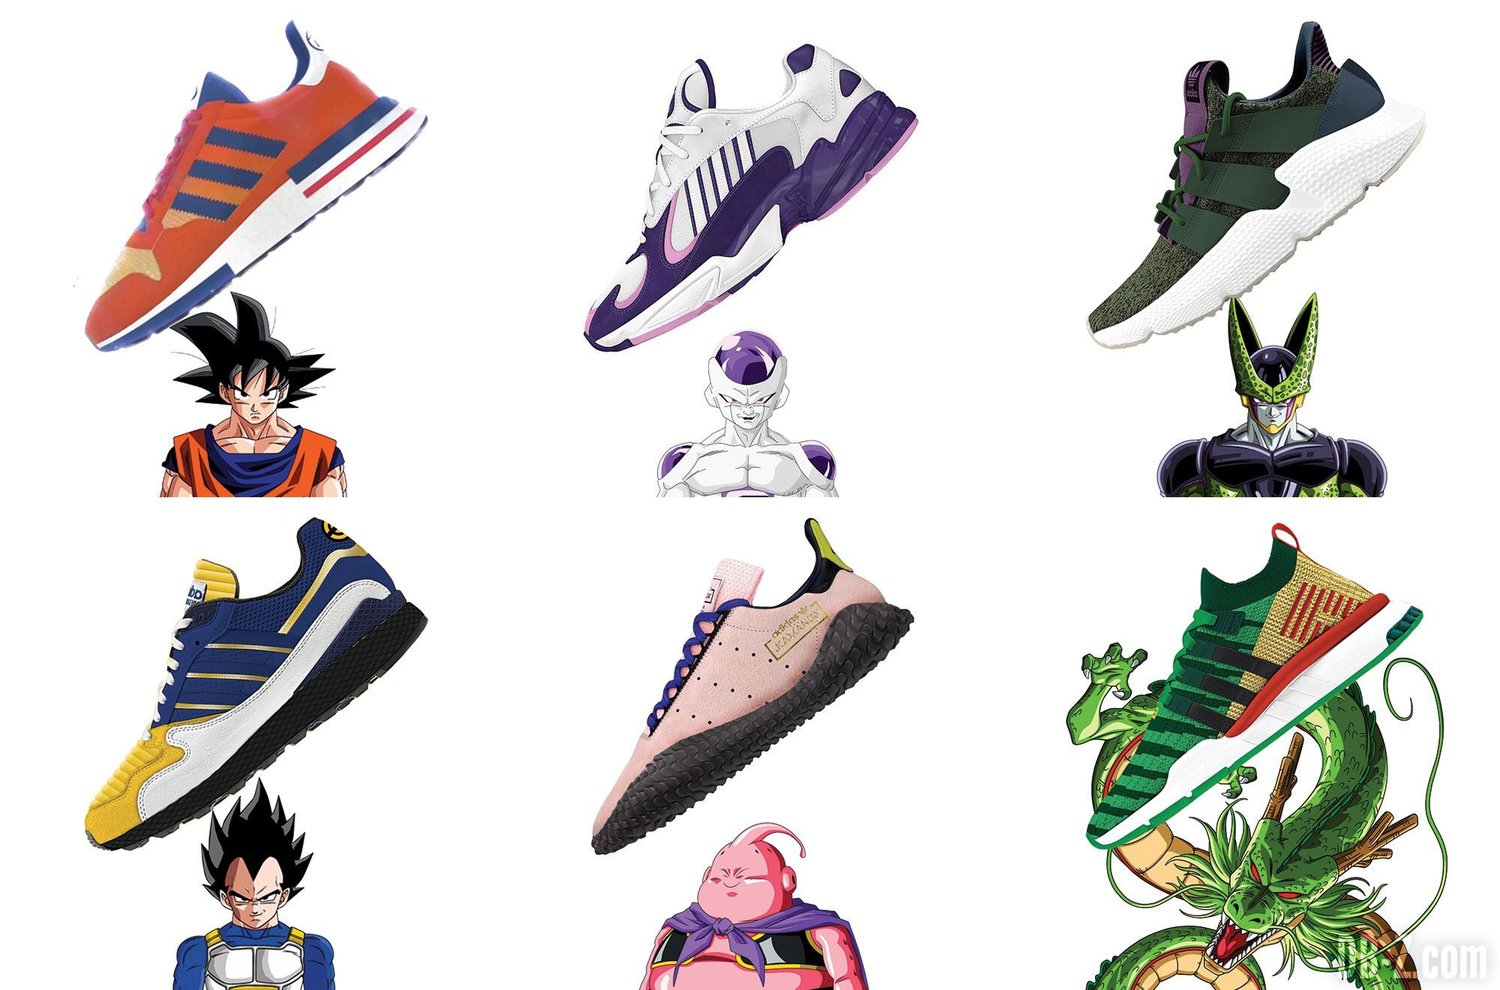 eaf7f62881da4 Adidas X Dragon Ball Z - An Intersectionality of Nerdistry — Unique Drops